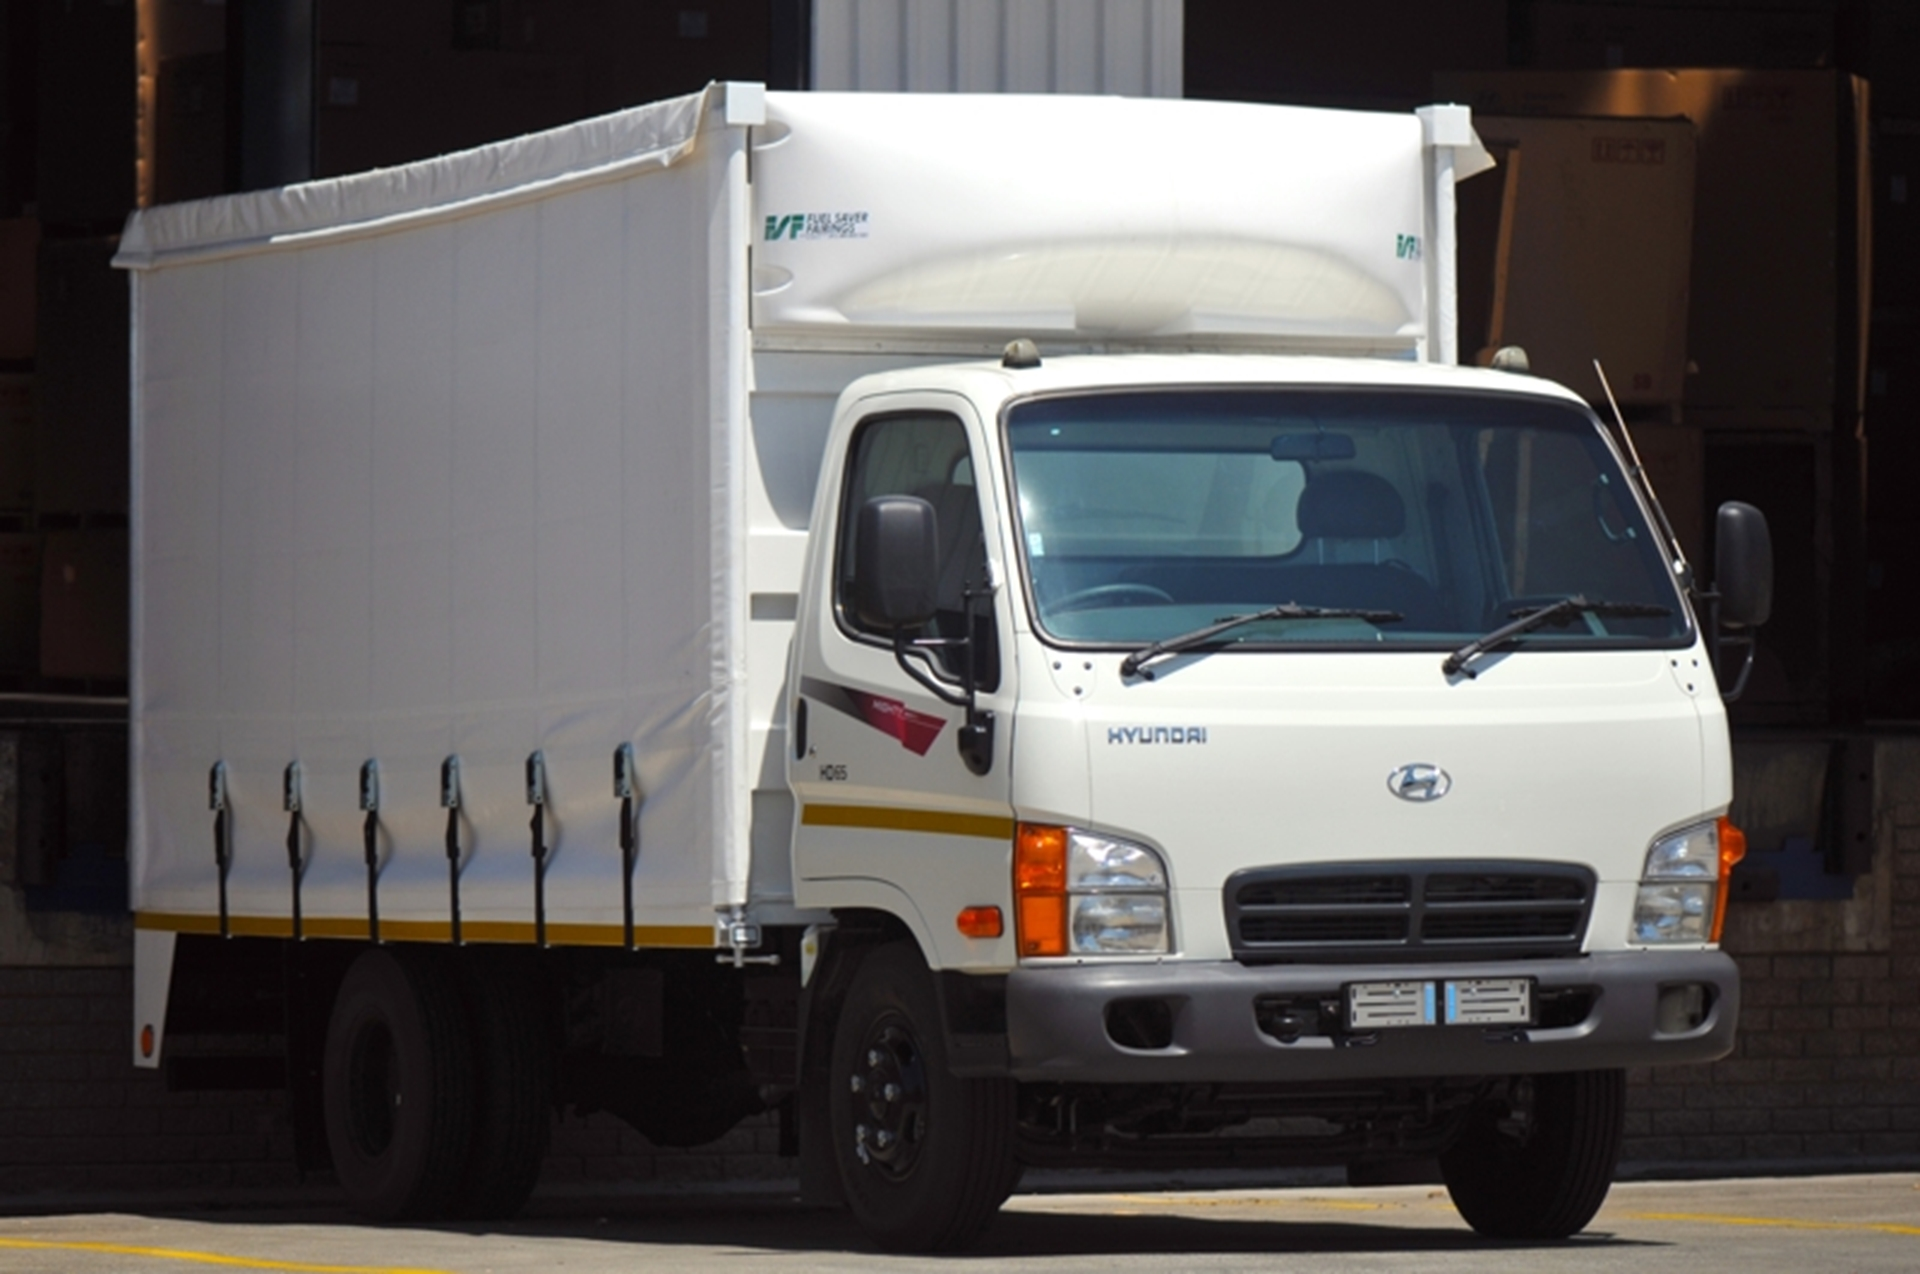 Hyundai HD65 Commercial Vehicles